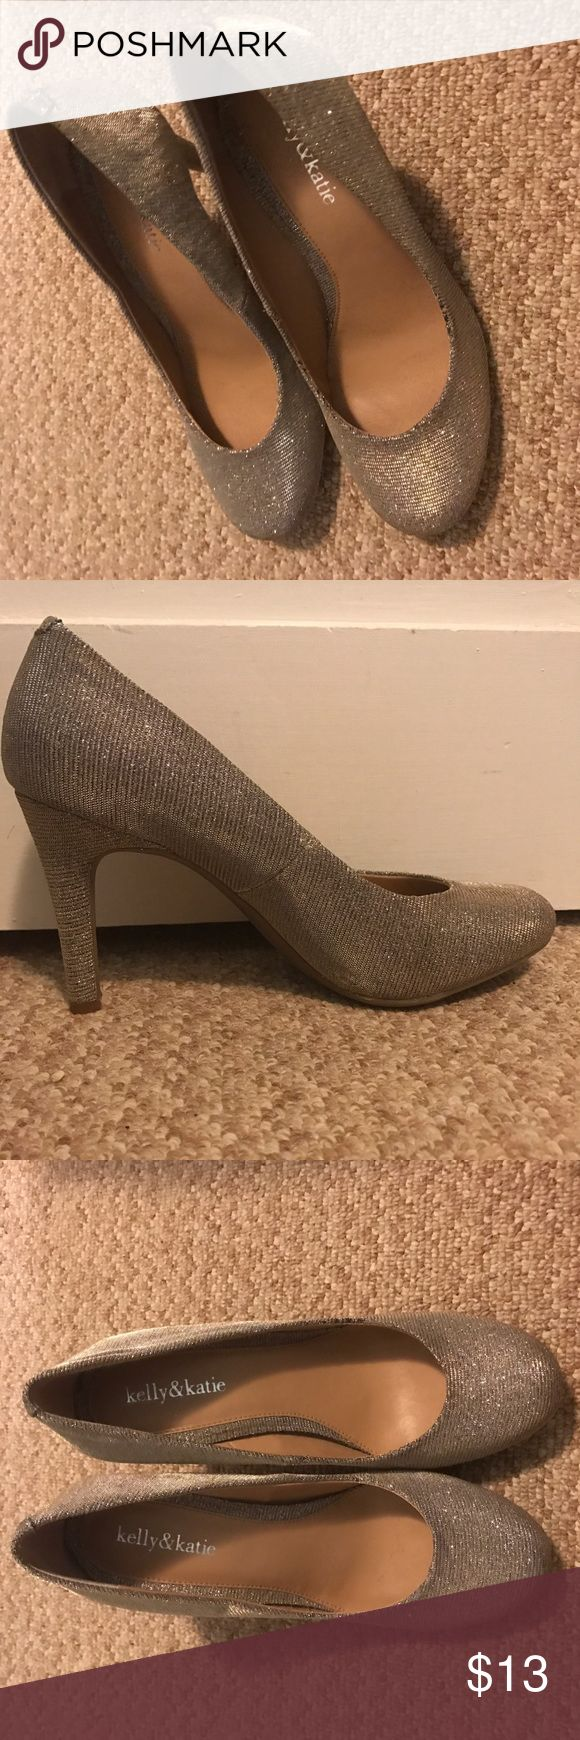 Silver Sparkly Heels Silver Sparkly/Glitter Heels from Kelly and Katie. Only worn once. Size 9. Kelly & Katie Shoes Heels